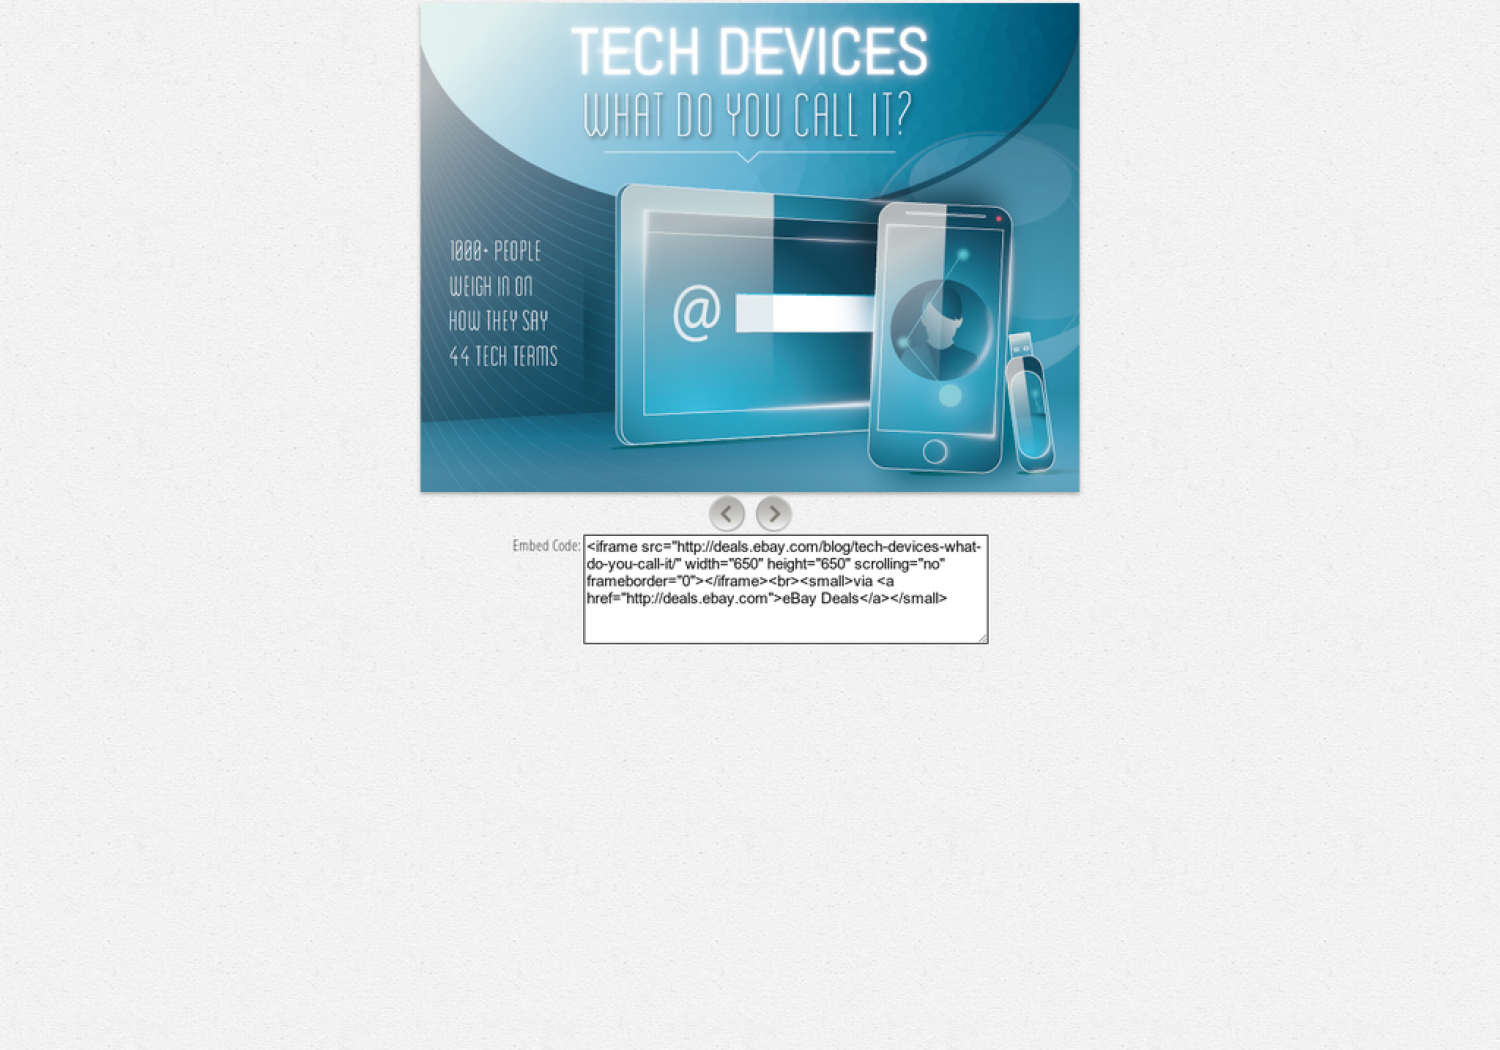 Tech Devices: What Do You Call It? Infographic